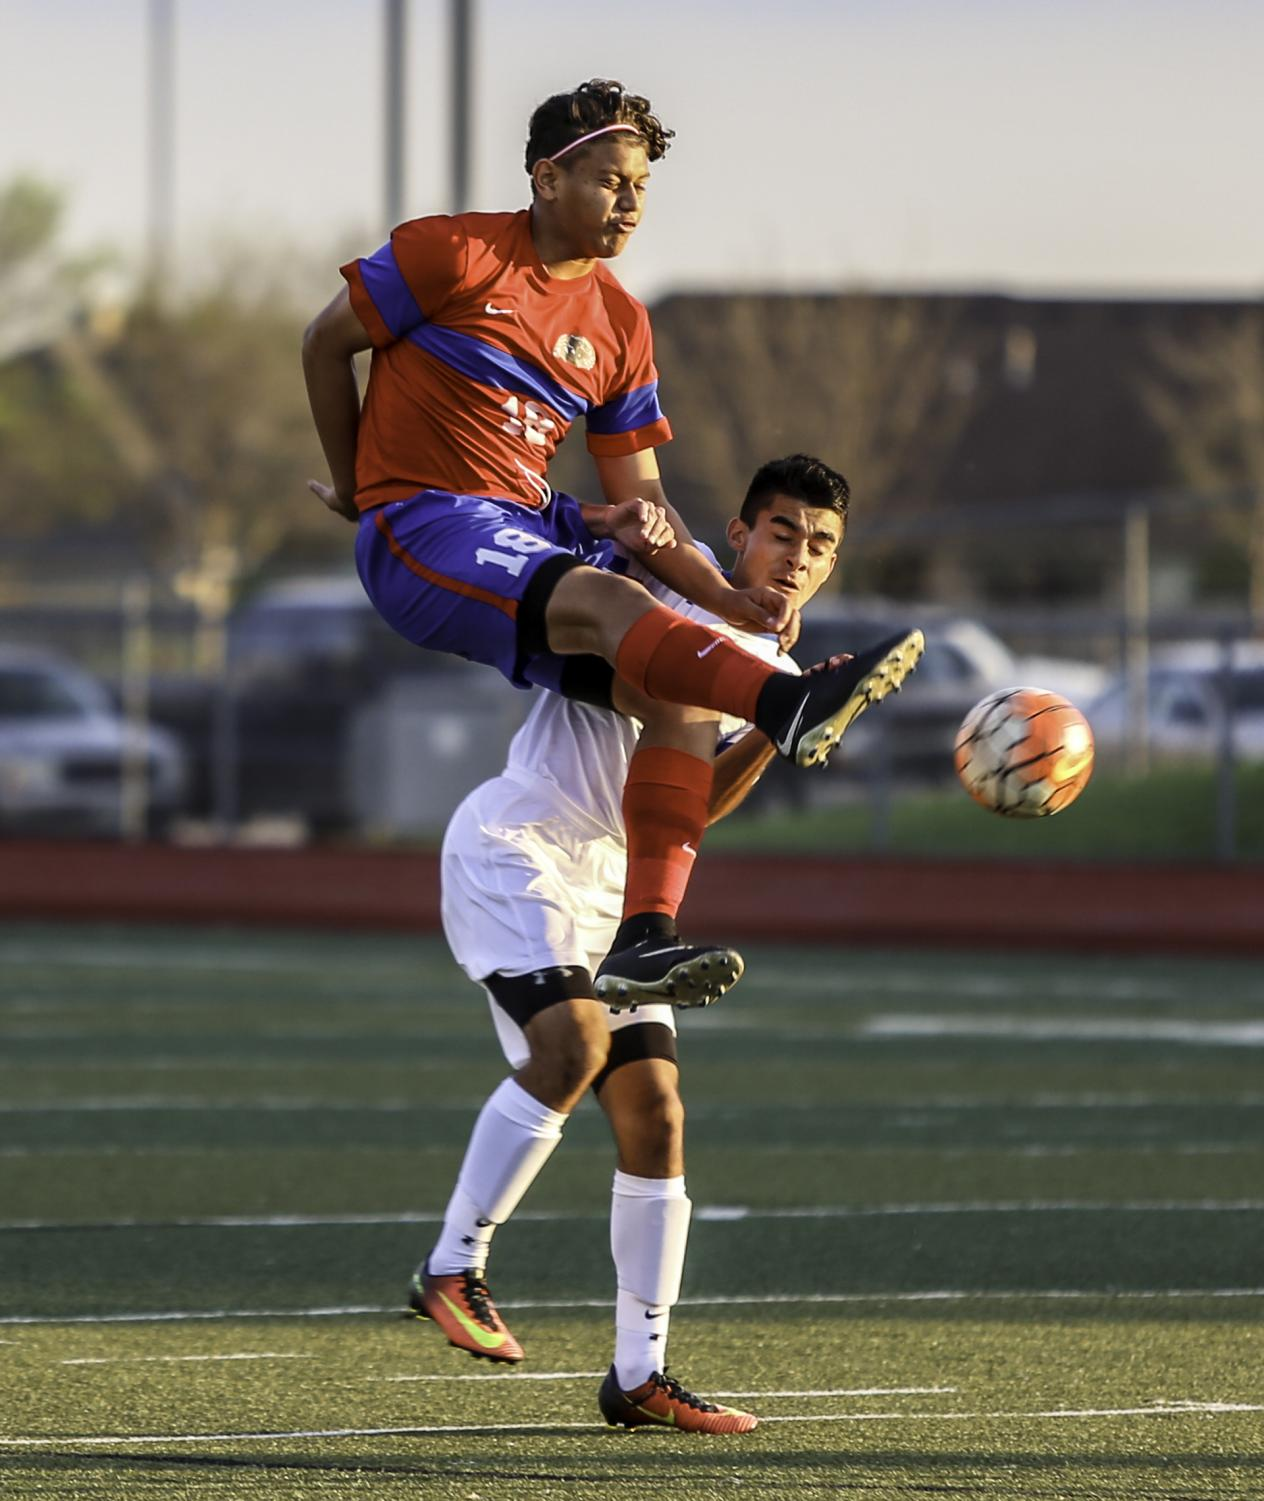 Tonight's soccer game features two top powers in the state and the Panthers know they must fight for the win. (Brenda Arana photo)